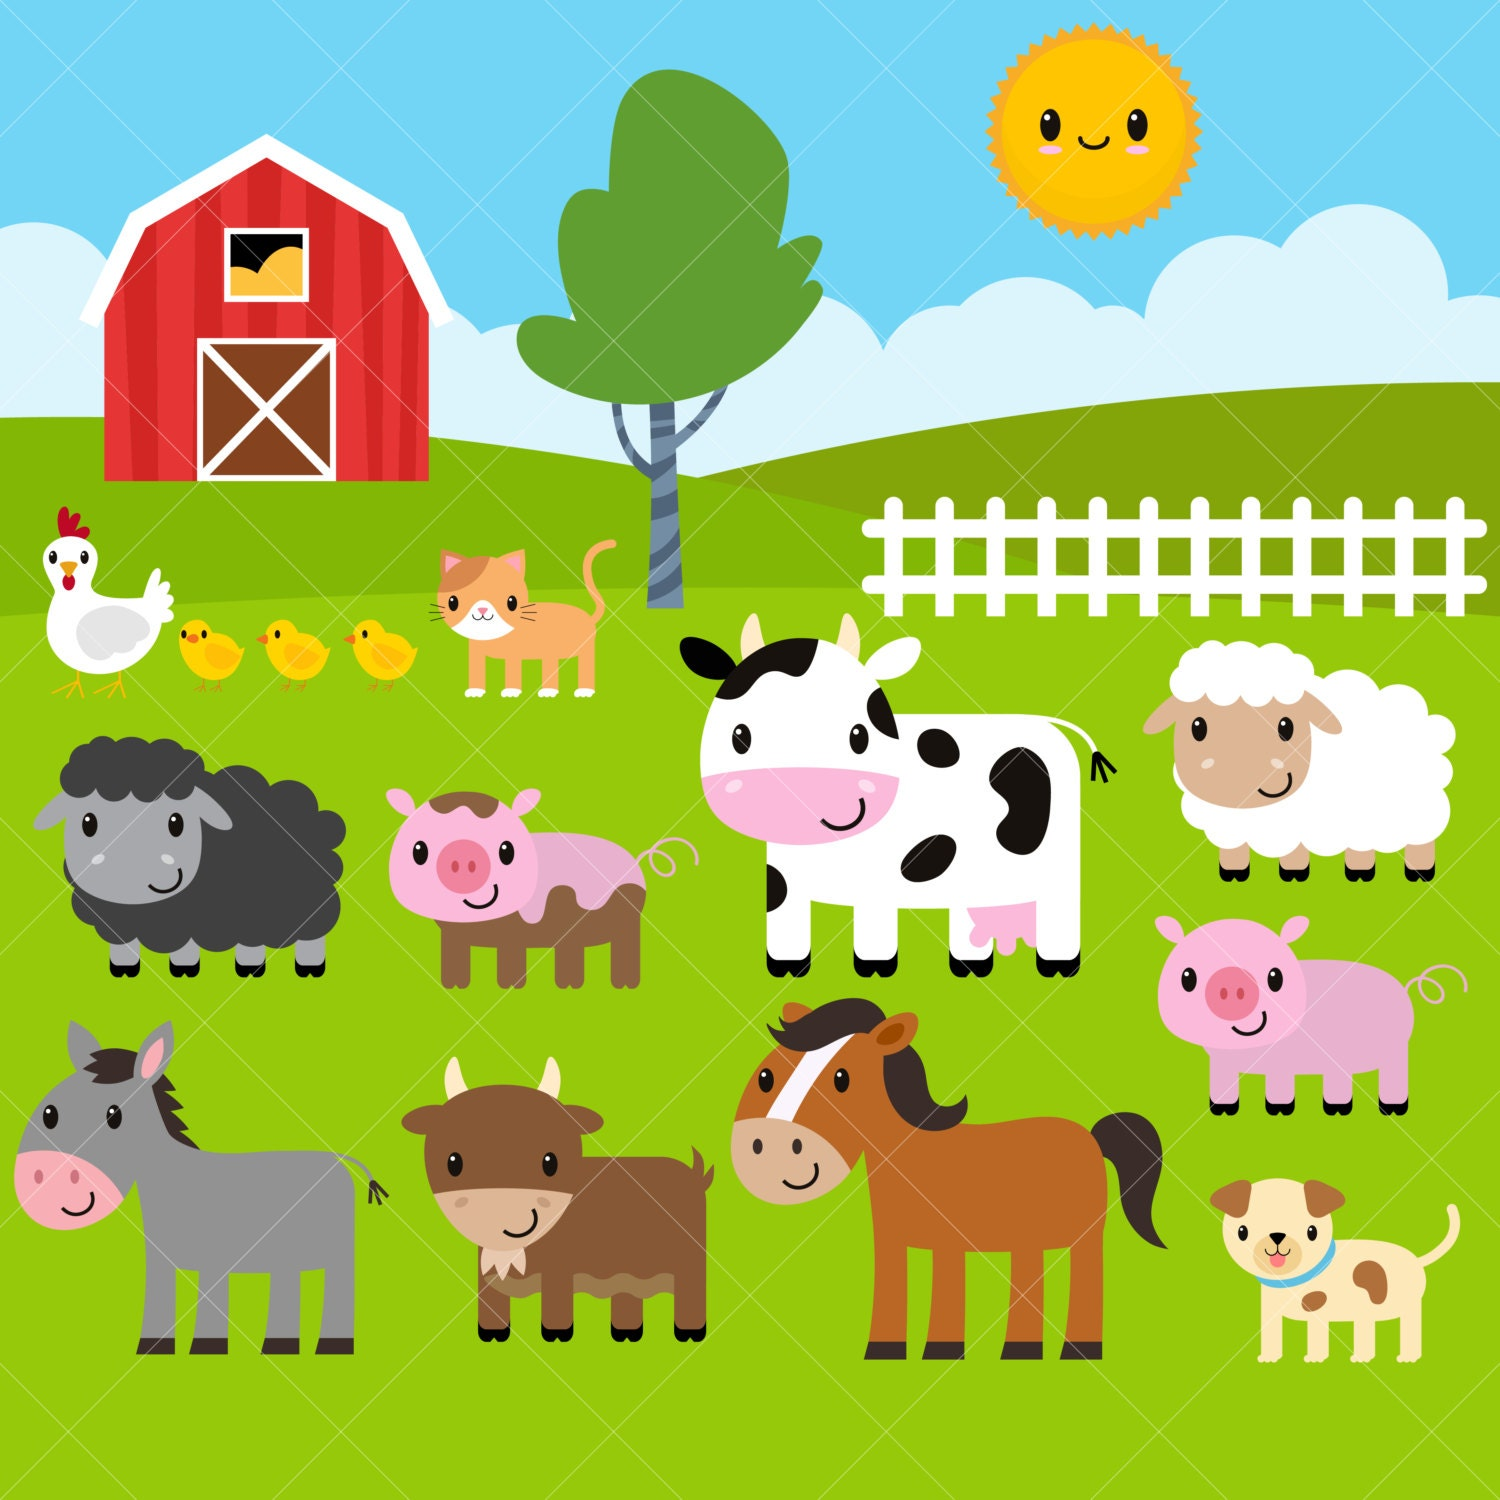 Farm Animals Clipart / Farm Clip Art / Barnyard Animals | Etsy